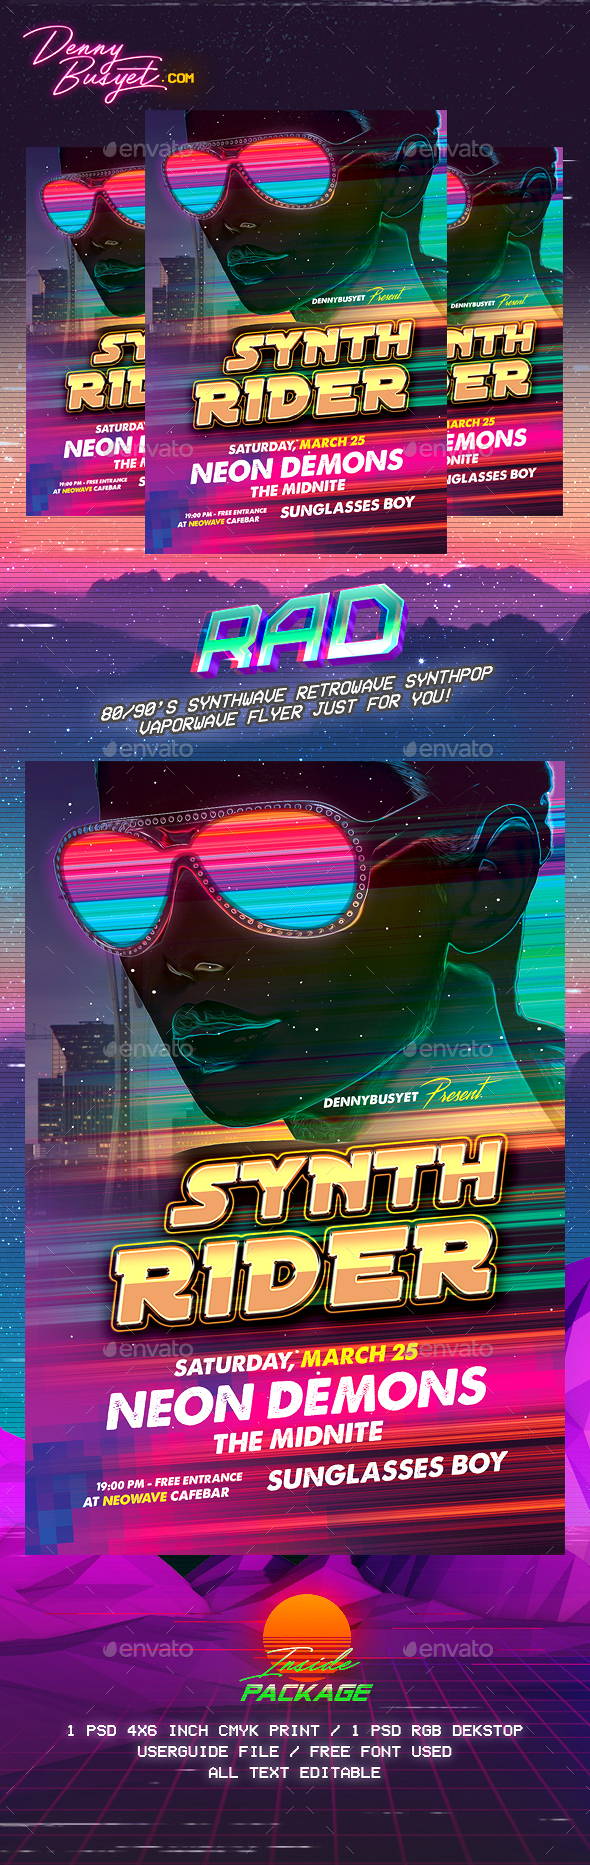 Synth Rider Synthwave Flyer Template - Events Flyers